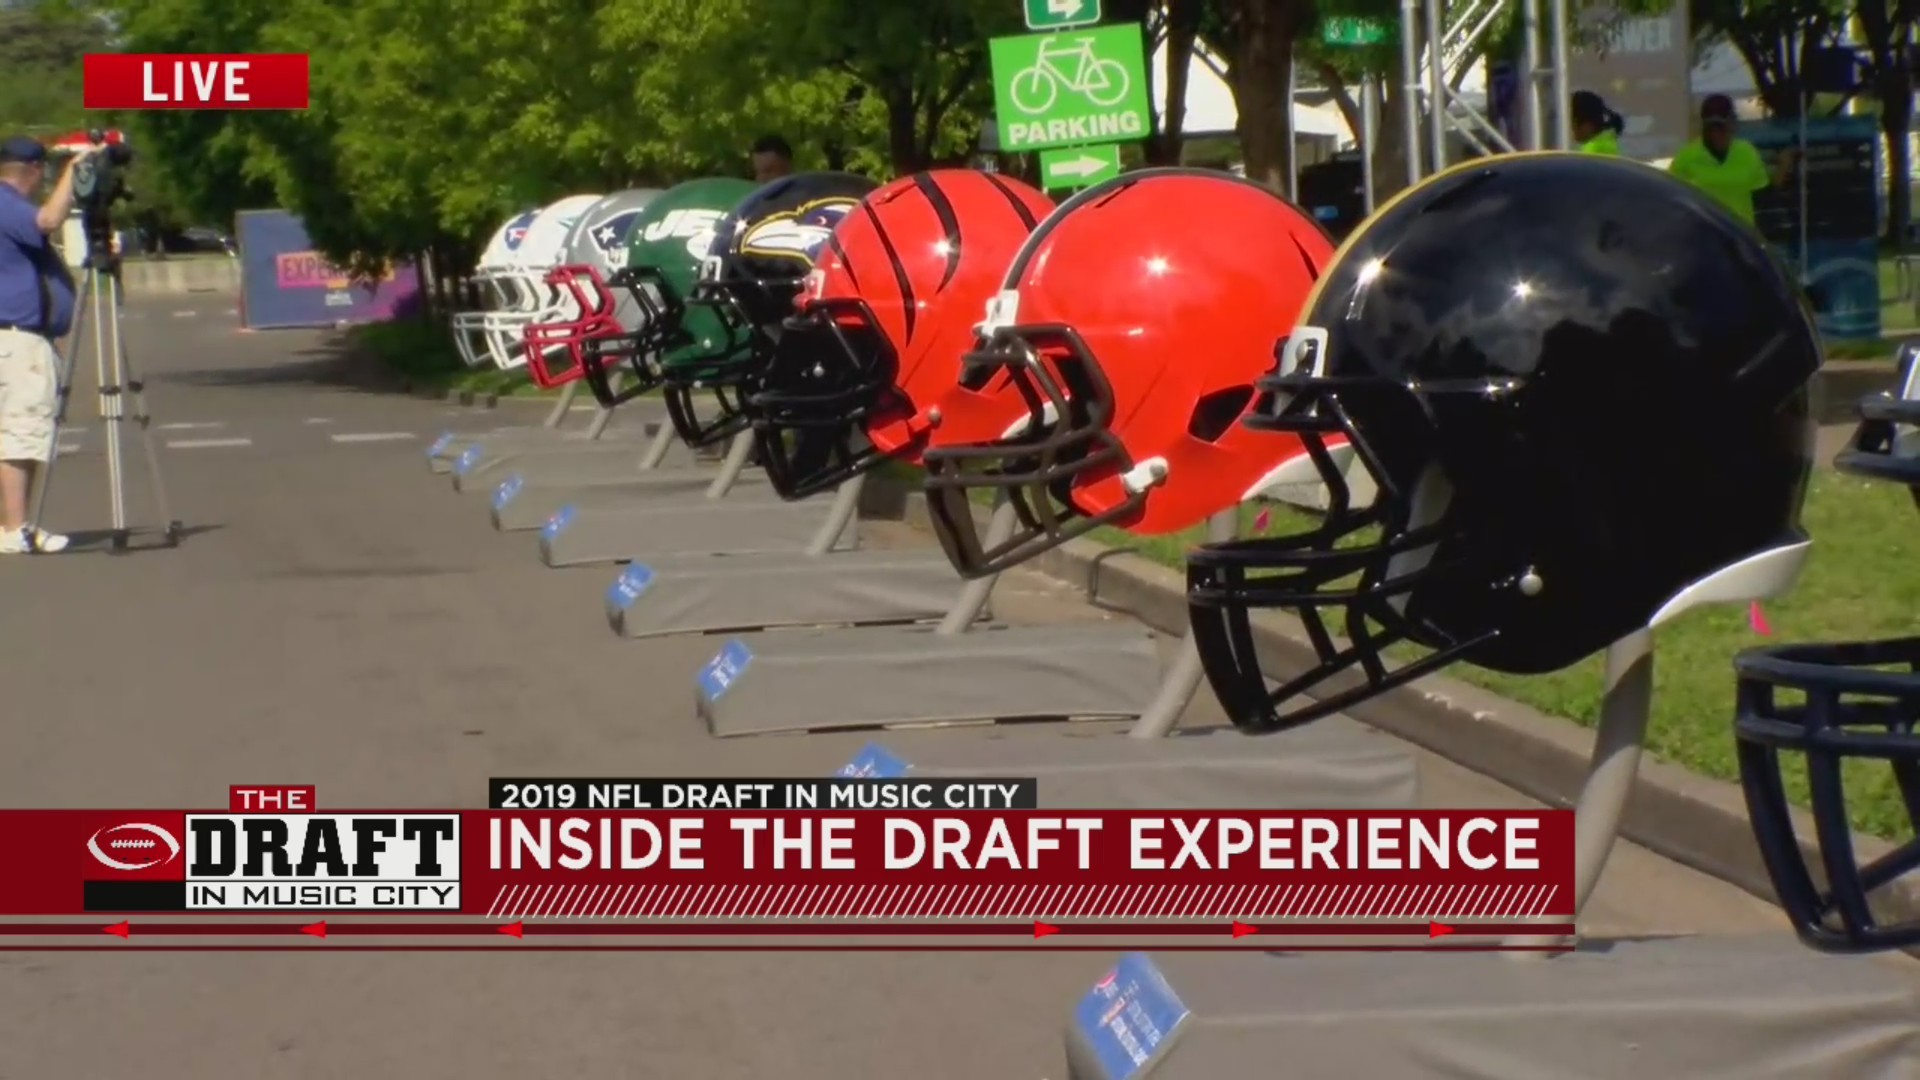 First_look_at_the_NFL_Draft_Experience_9_20190424220436